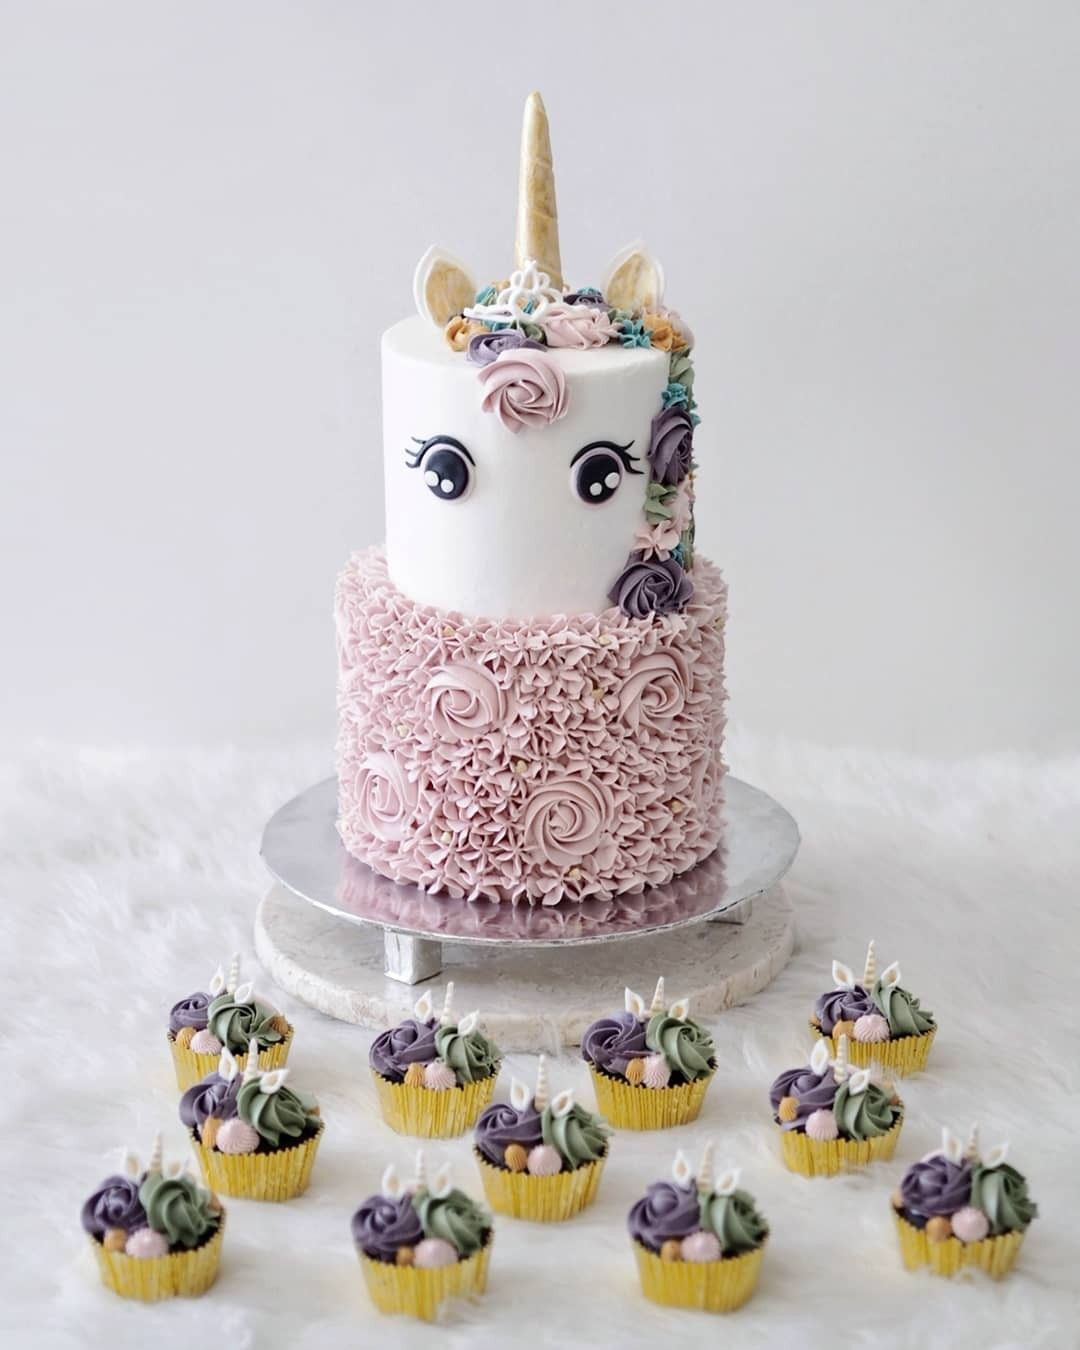 2 Tier Unicorn Cake With Cupcakes With Images Unicorn Birthday